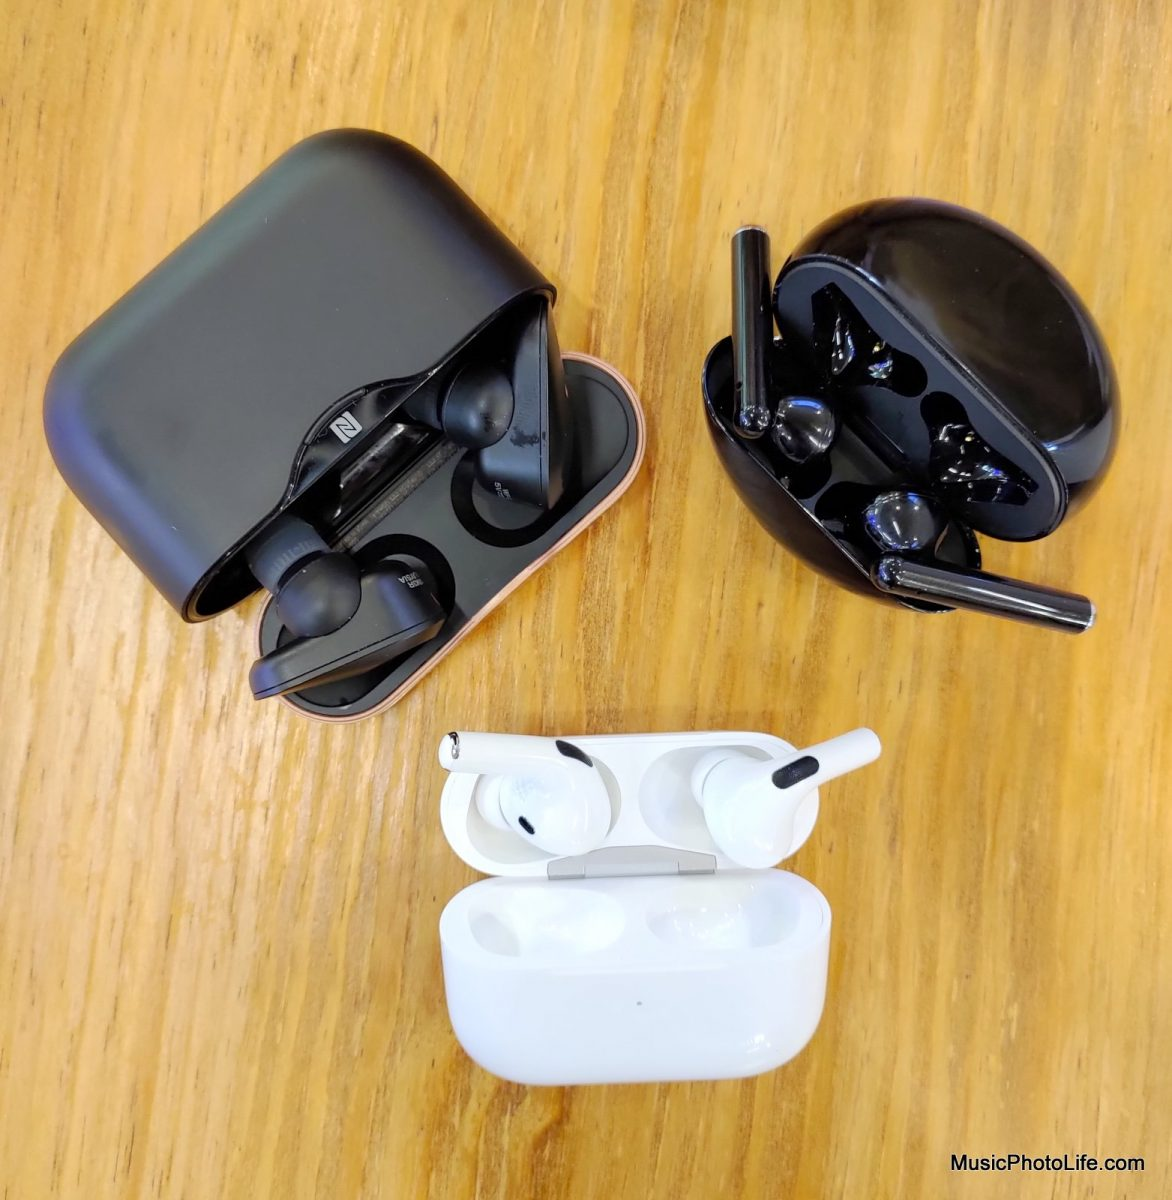 AirPods Pro with Huawei Freebuds 3 and Sony WF-1000XM3